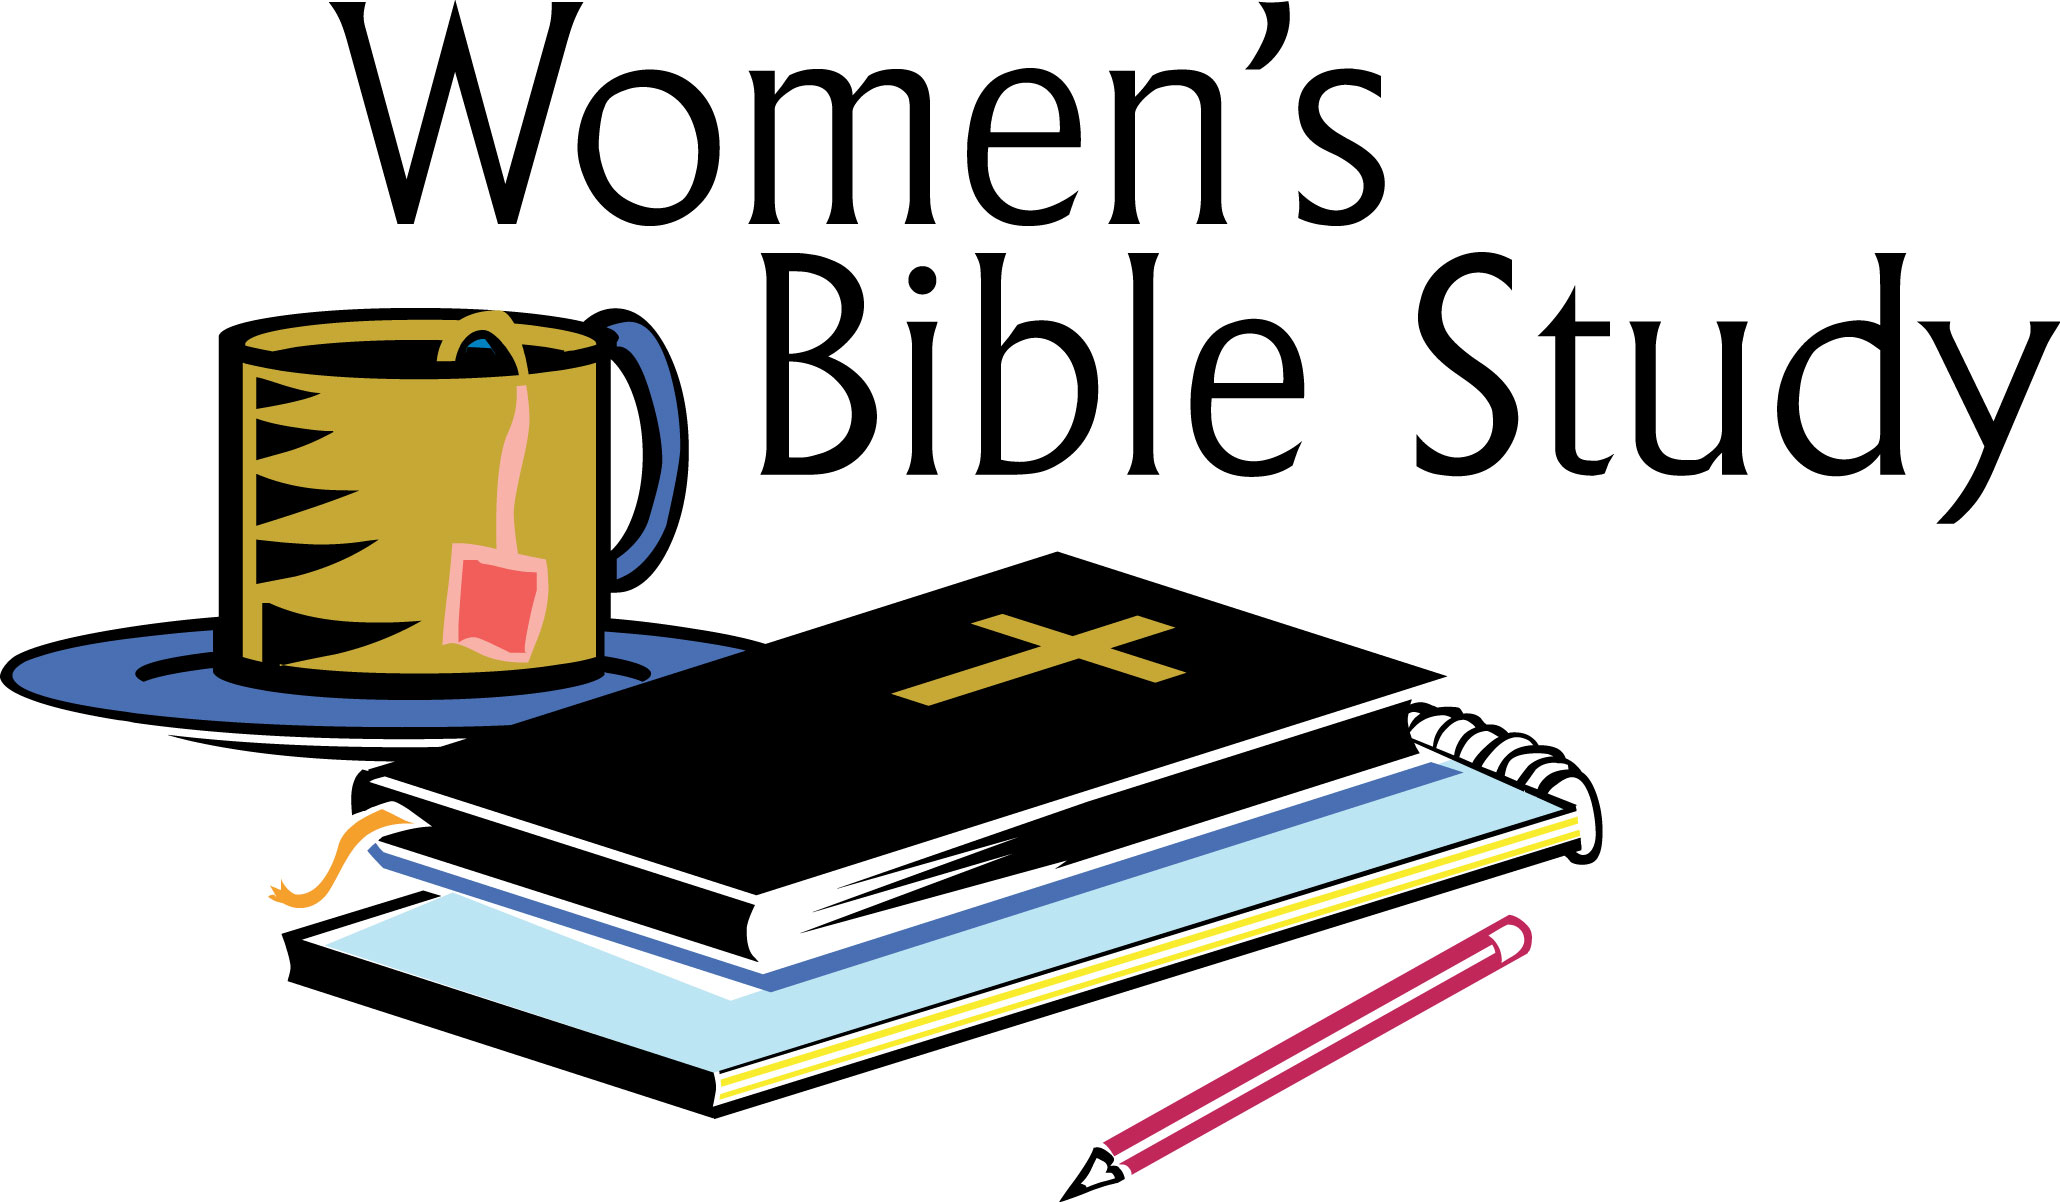 Womens bible study clipart.